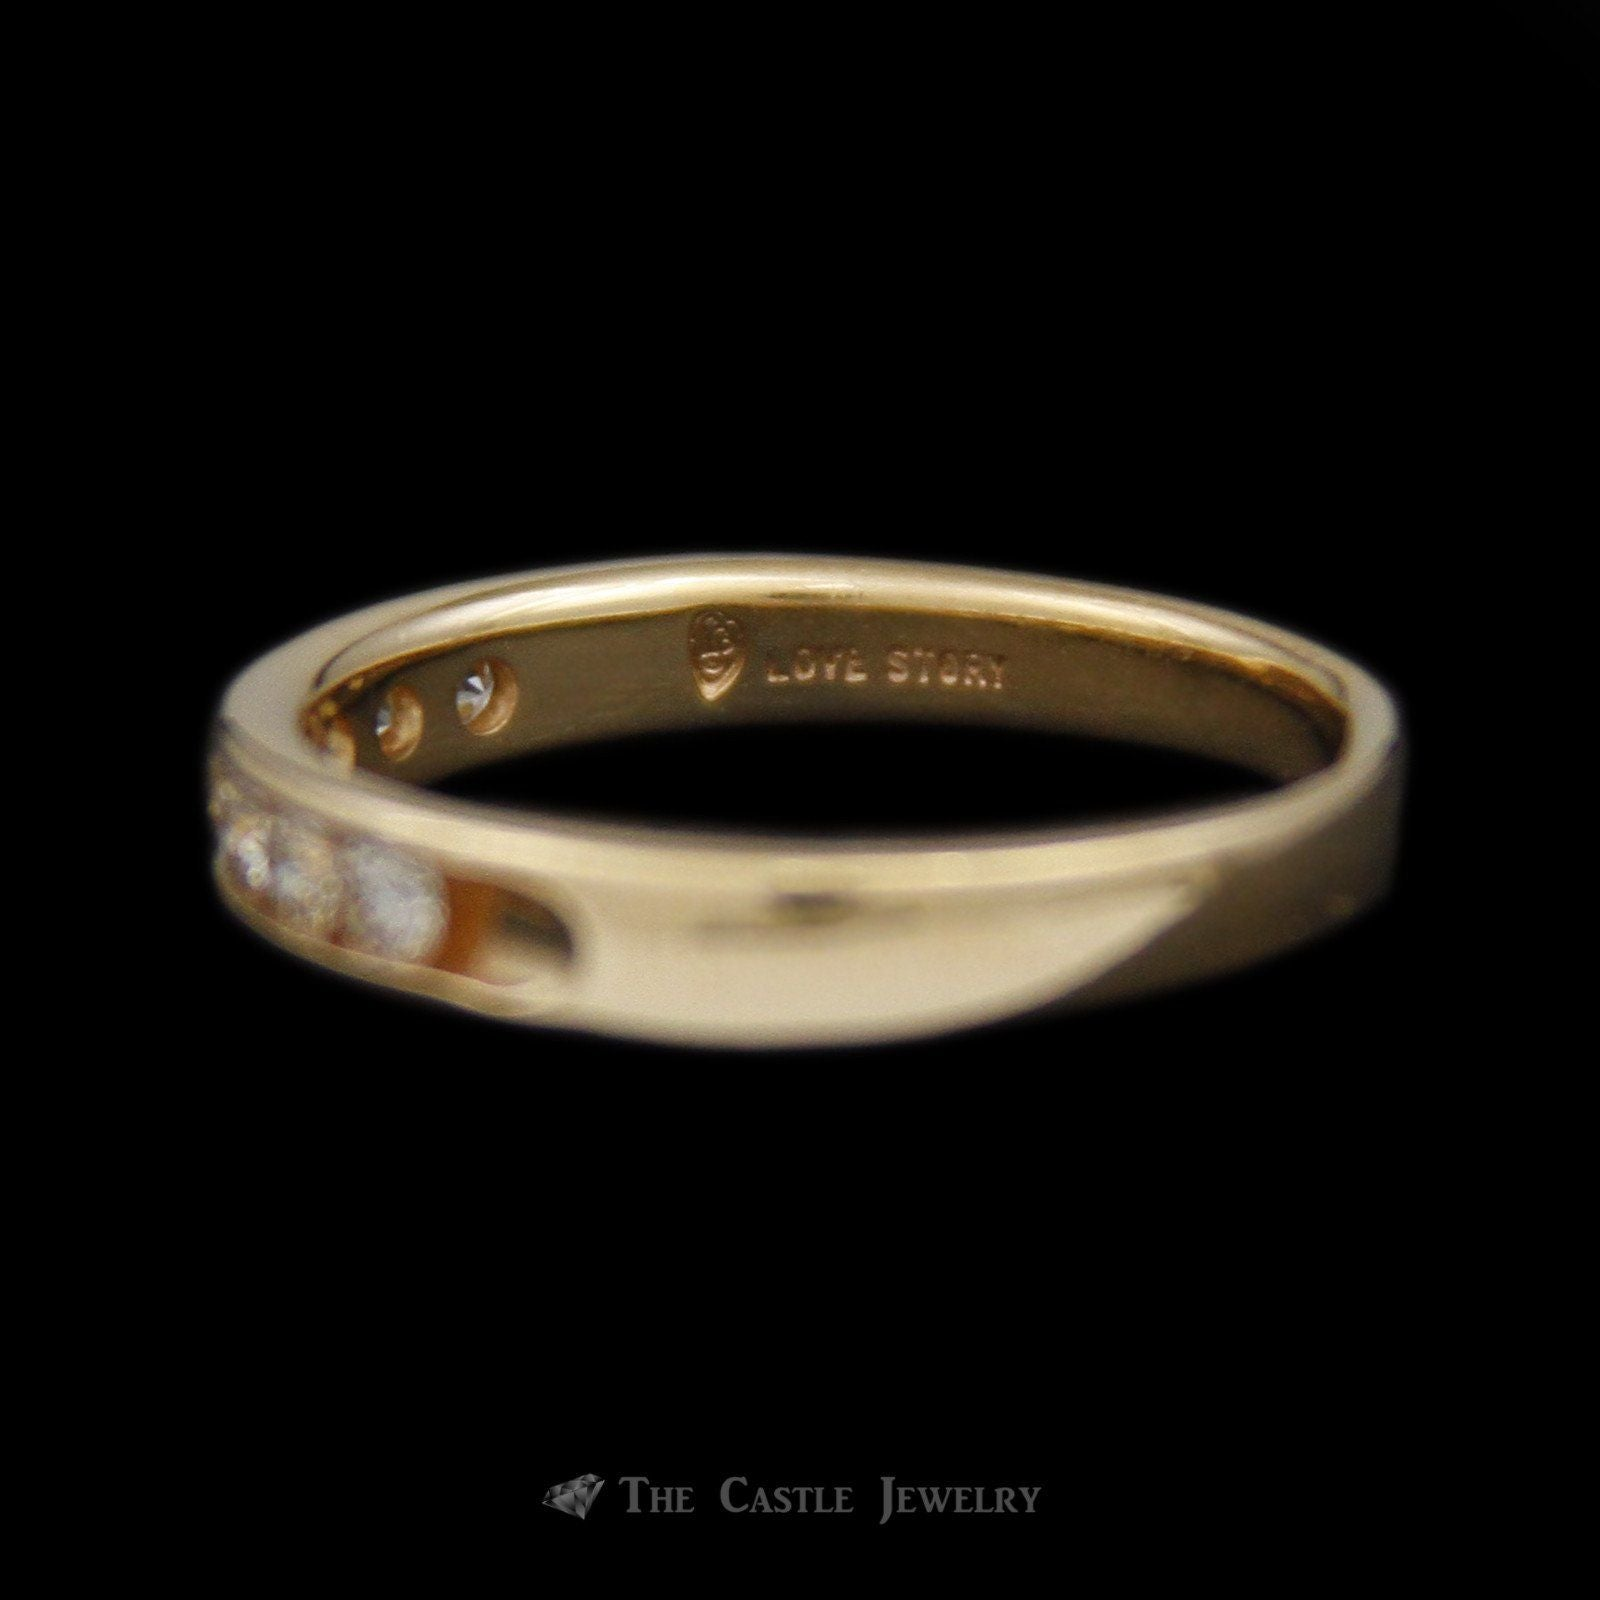 Love Story Channel Set Diamond Wedding Band .52cttw in 14K Yellow Gold-2